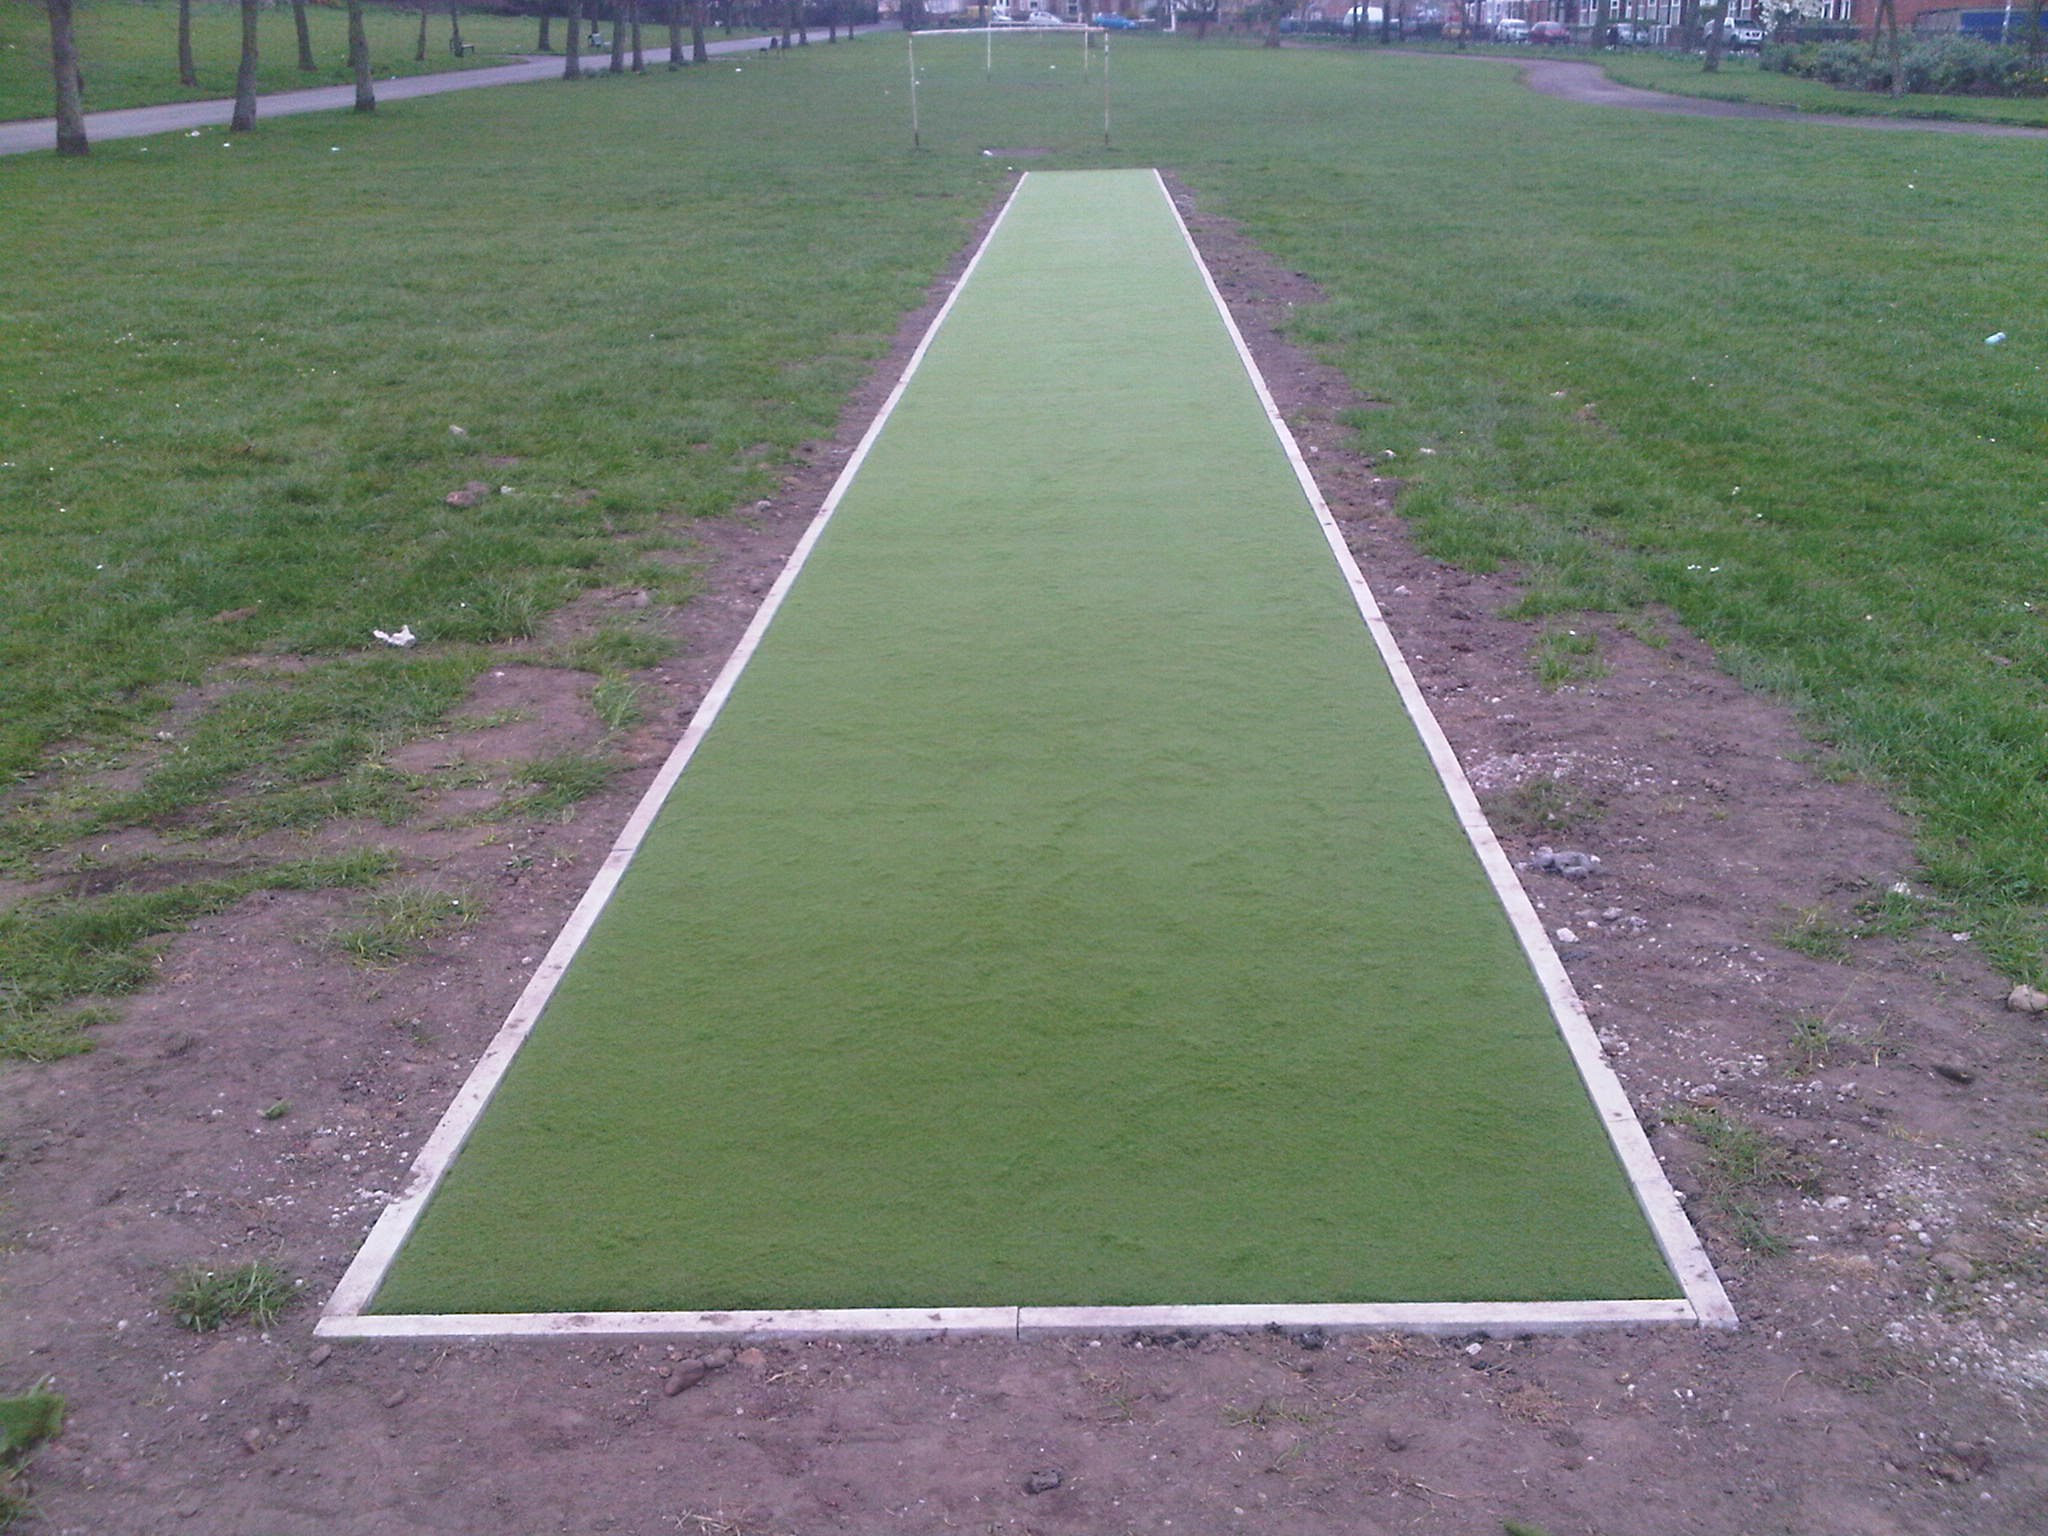 Cricket wicket inSeedley,Salford, Greater Manchester